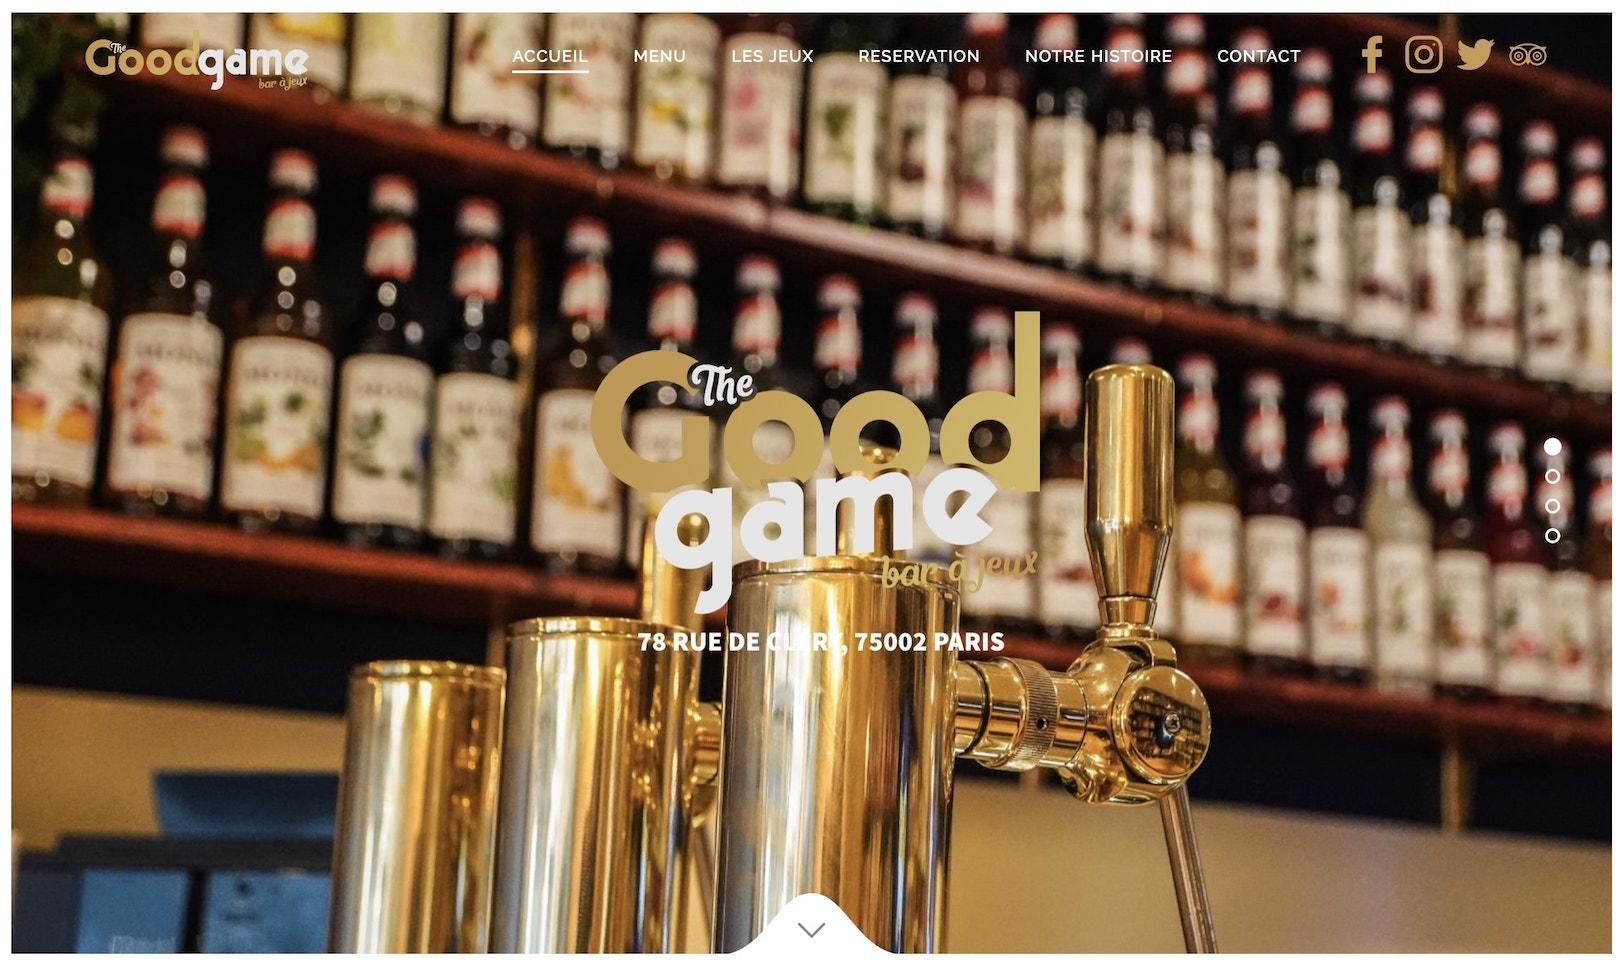 creation de site pour bar